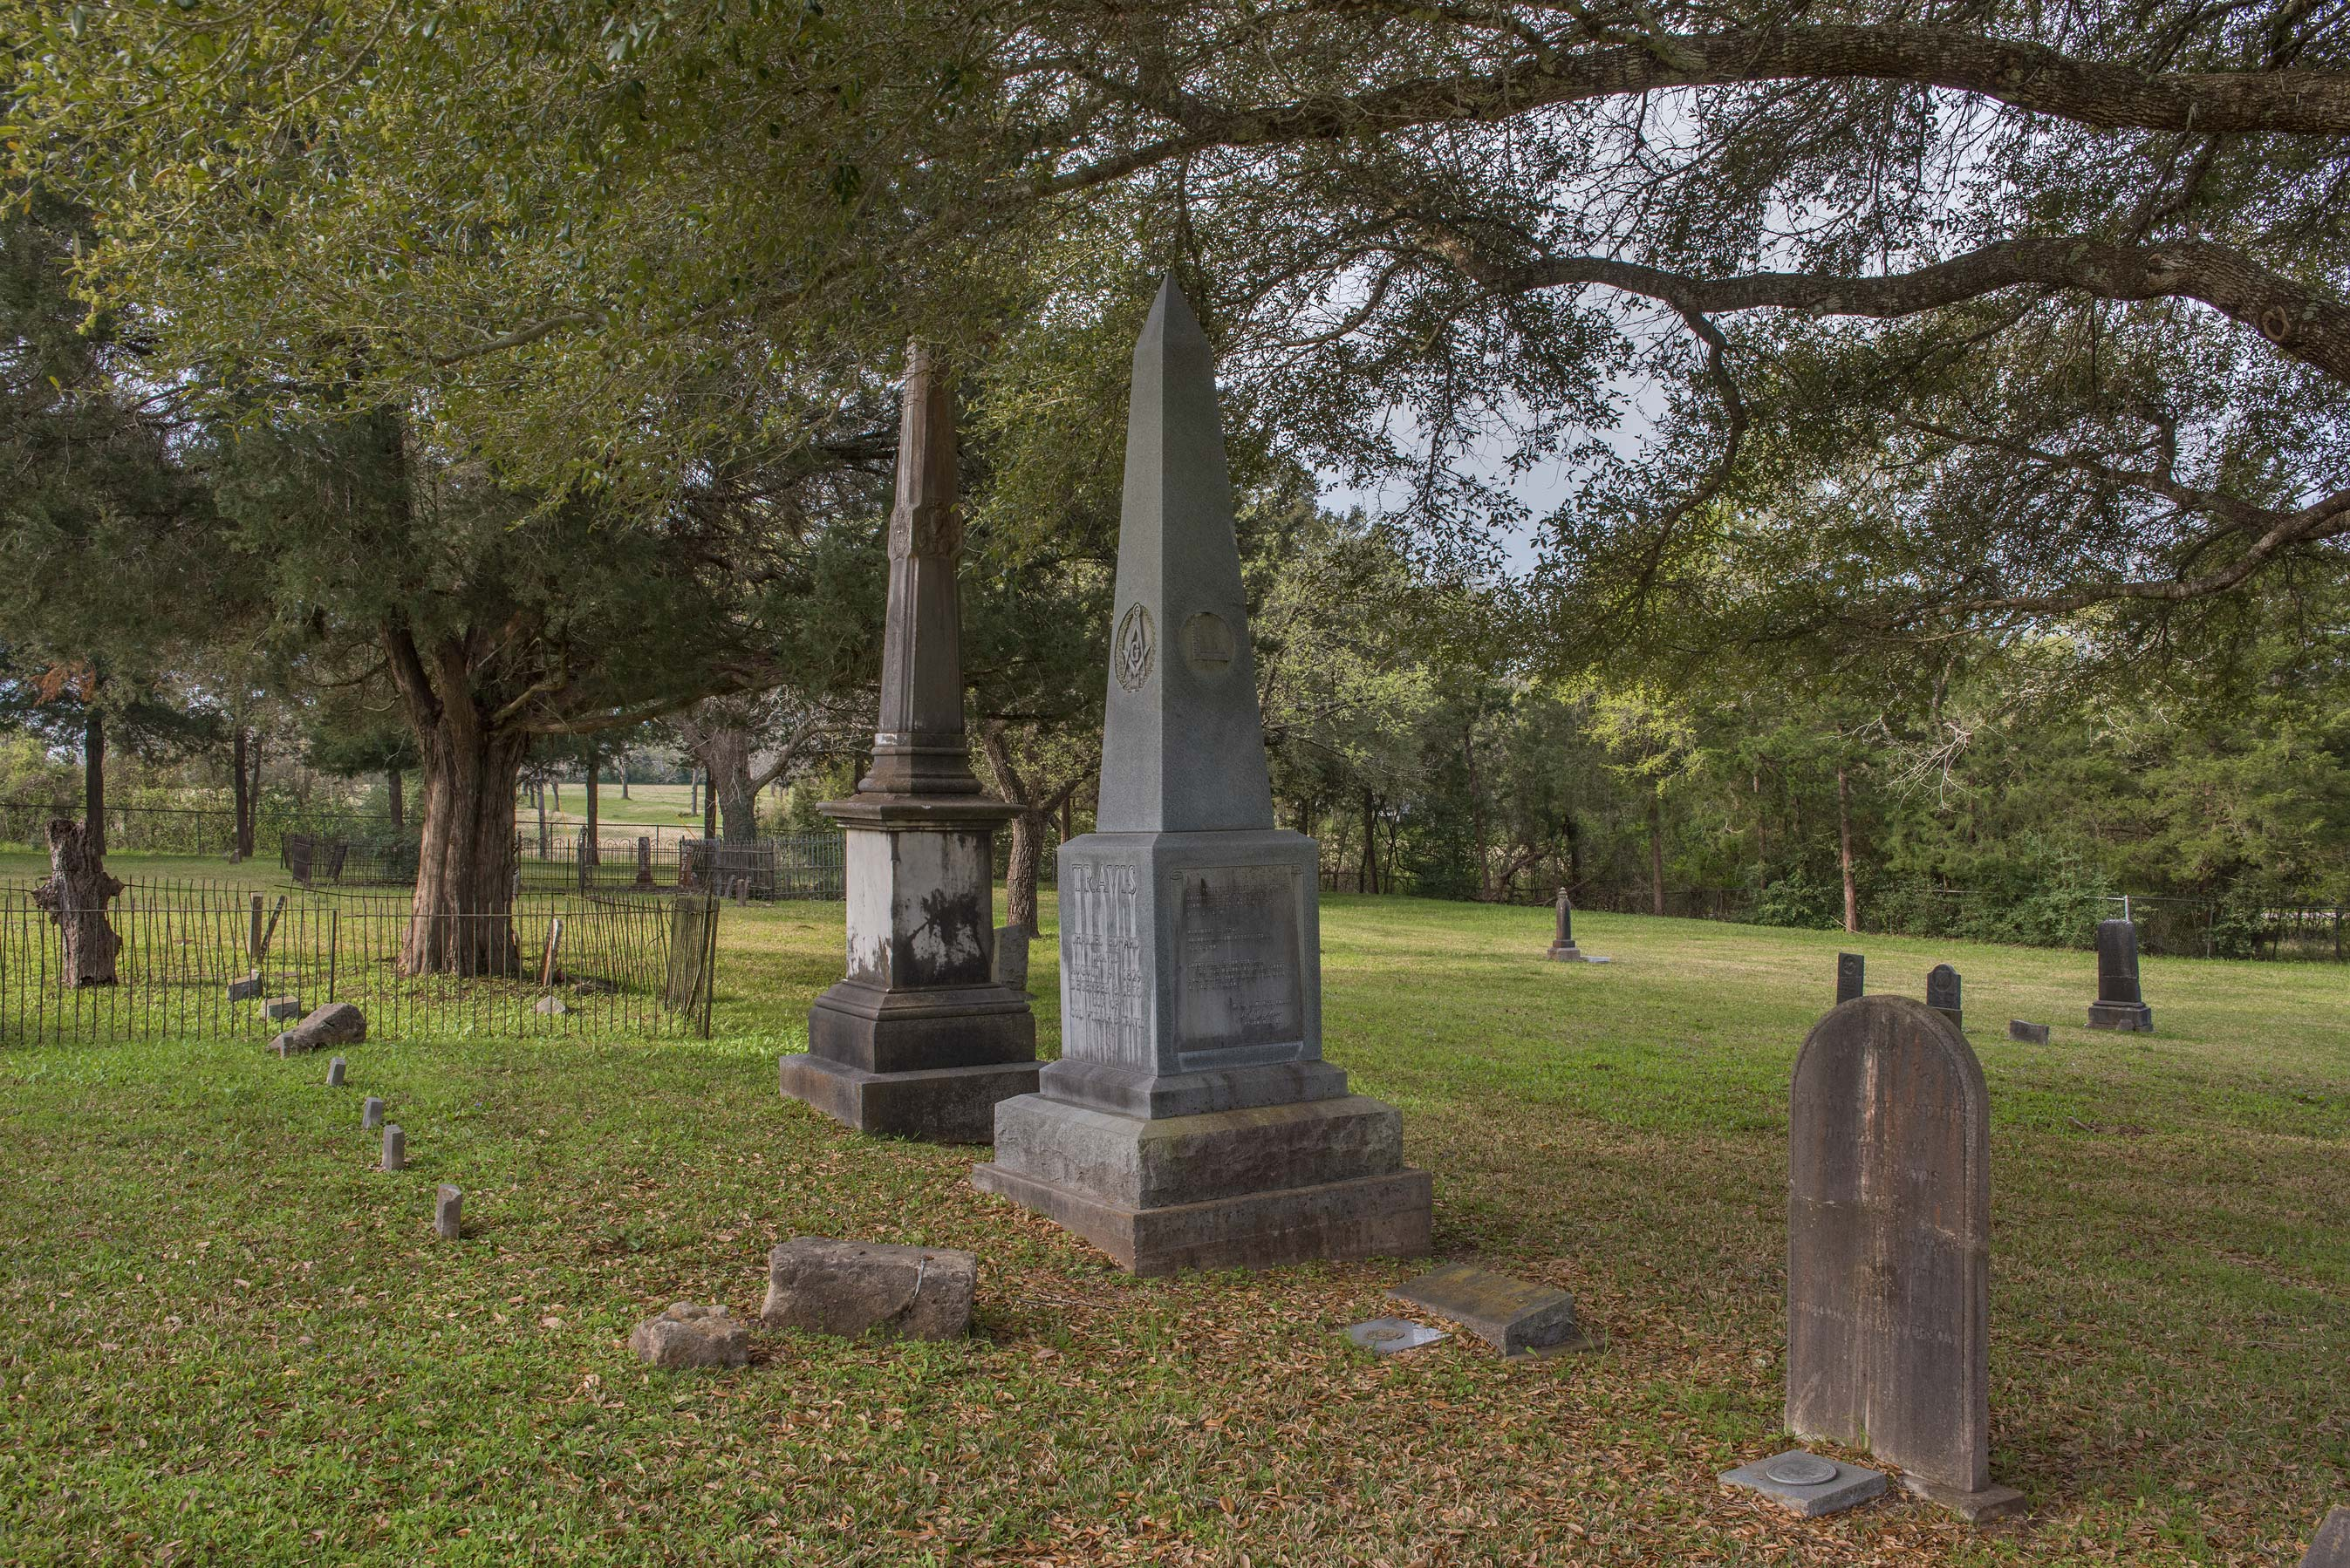 Tombs and oaks in Masonic Cemetery. Chappell Hill, Texas